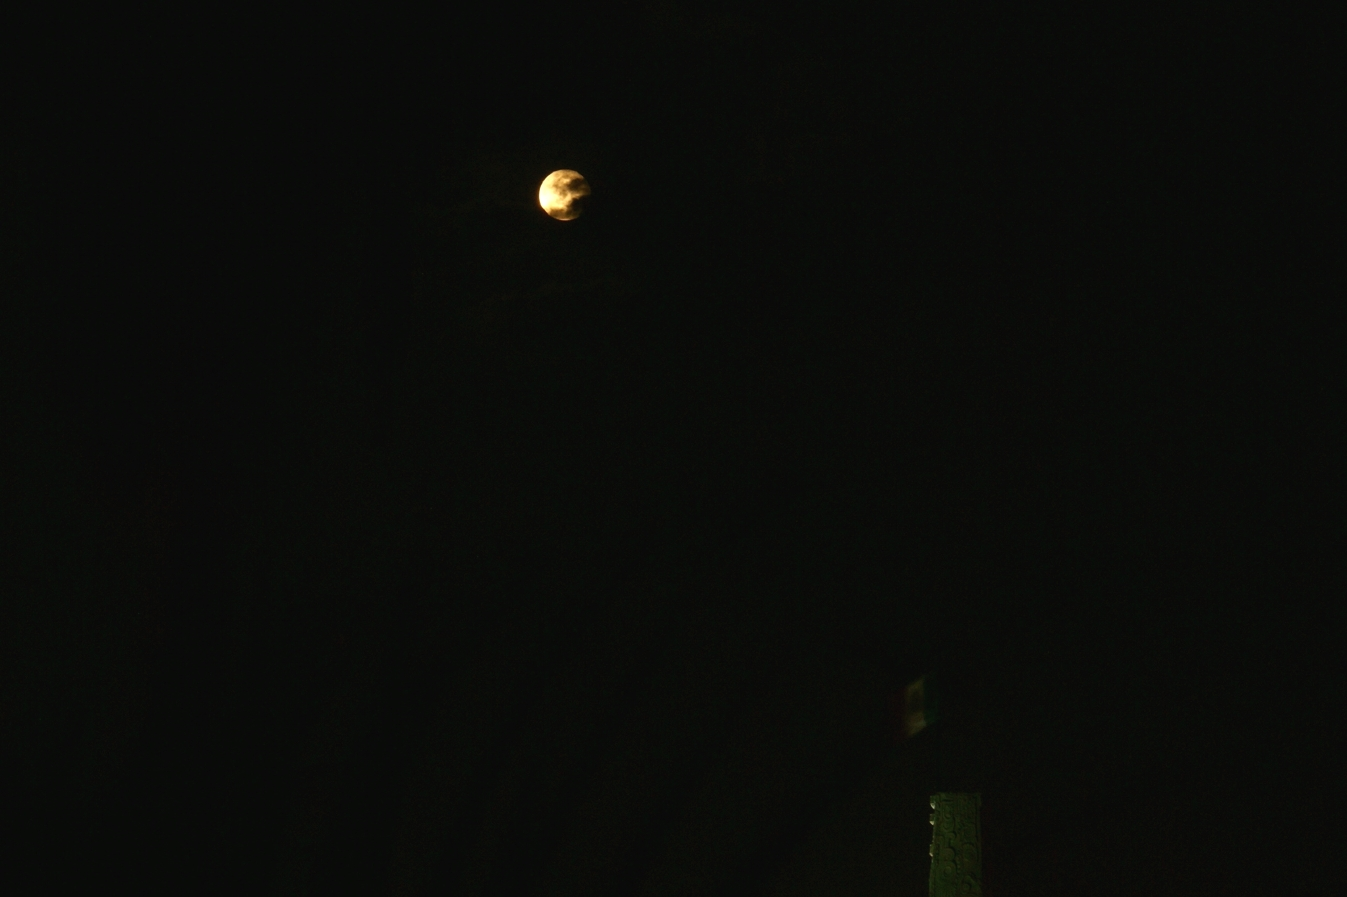 eclipse de luna12